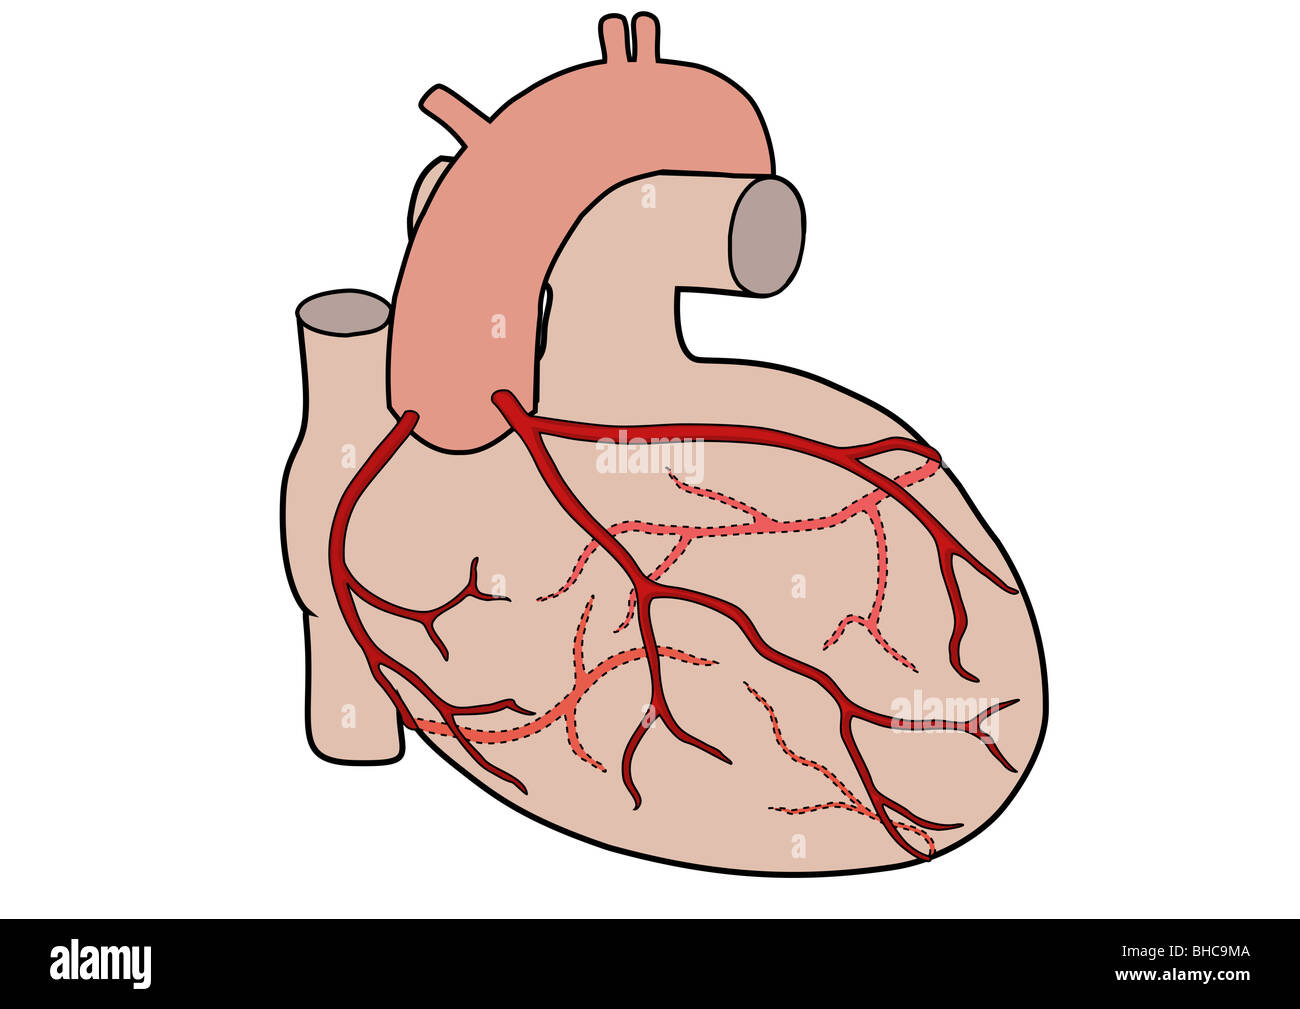 coronary arteries diagram branches what is a tree in math of the human heart showing